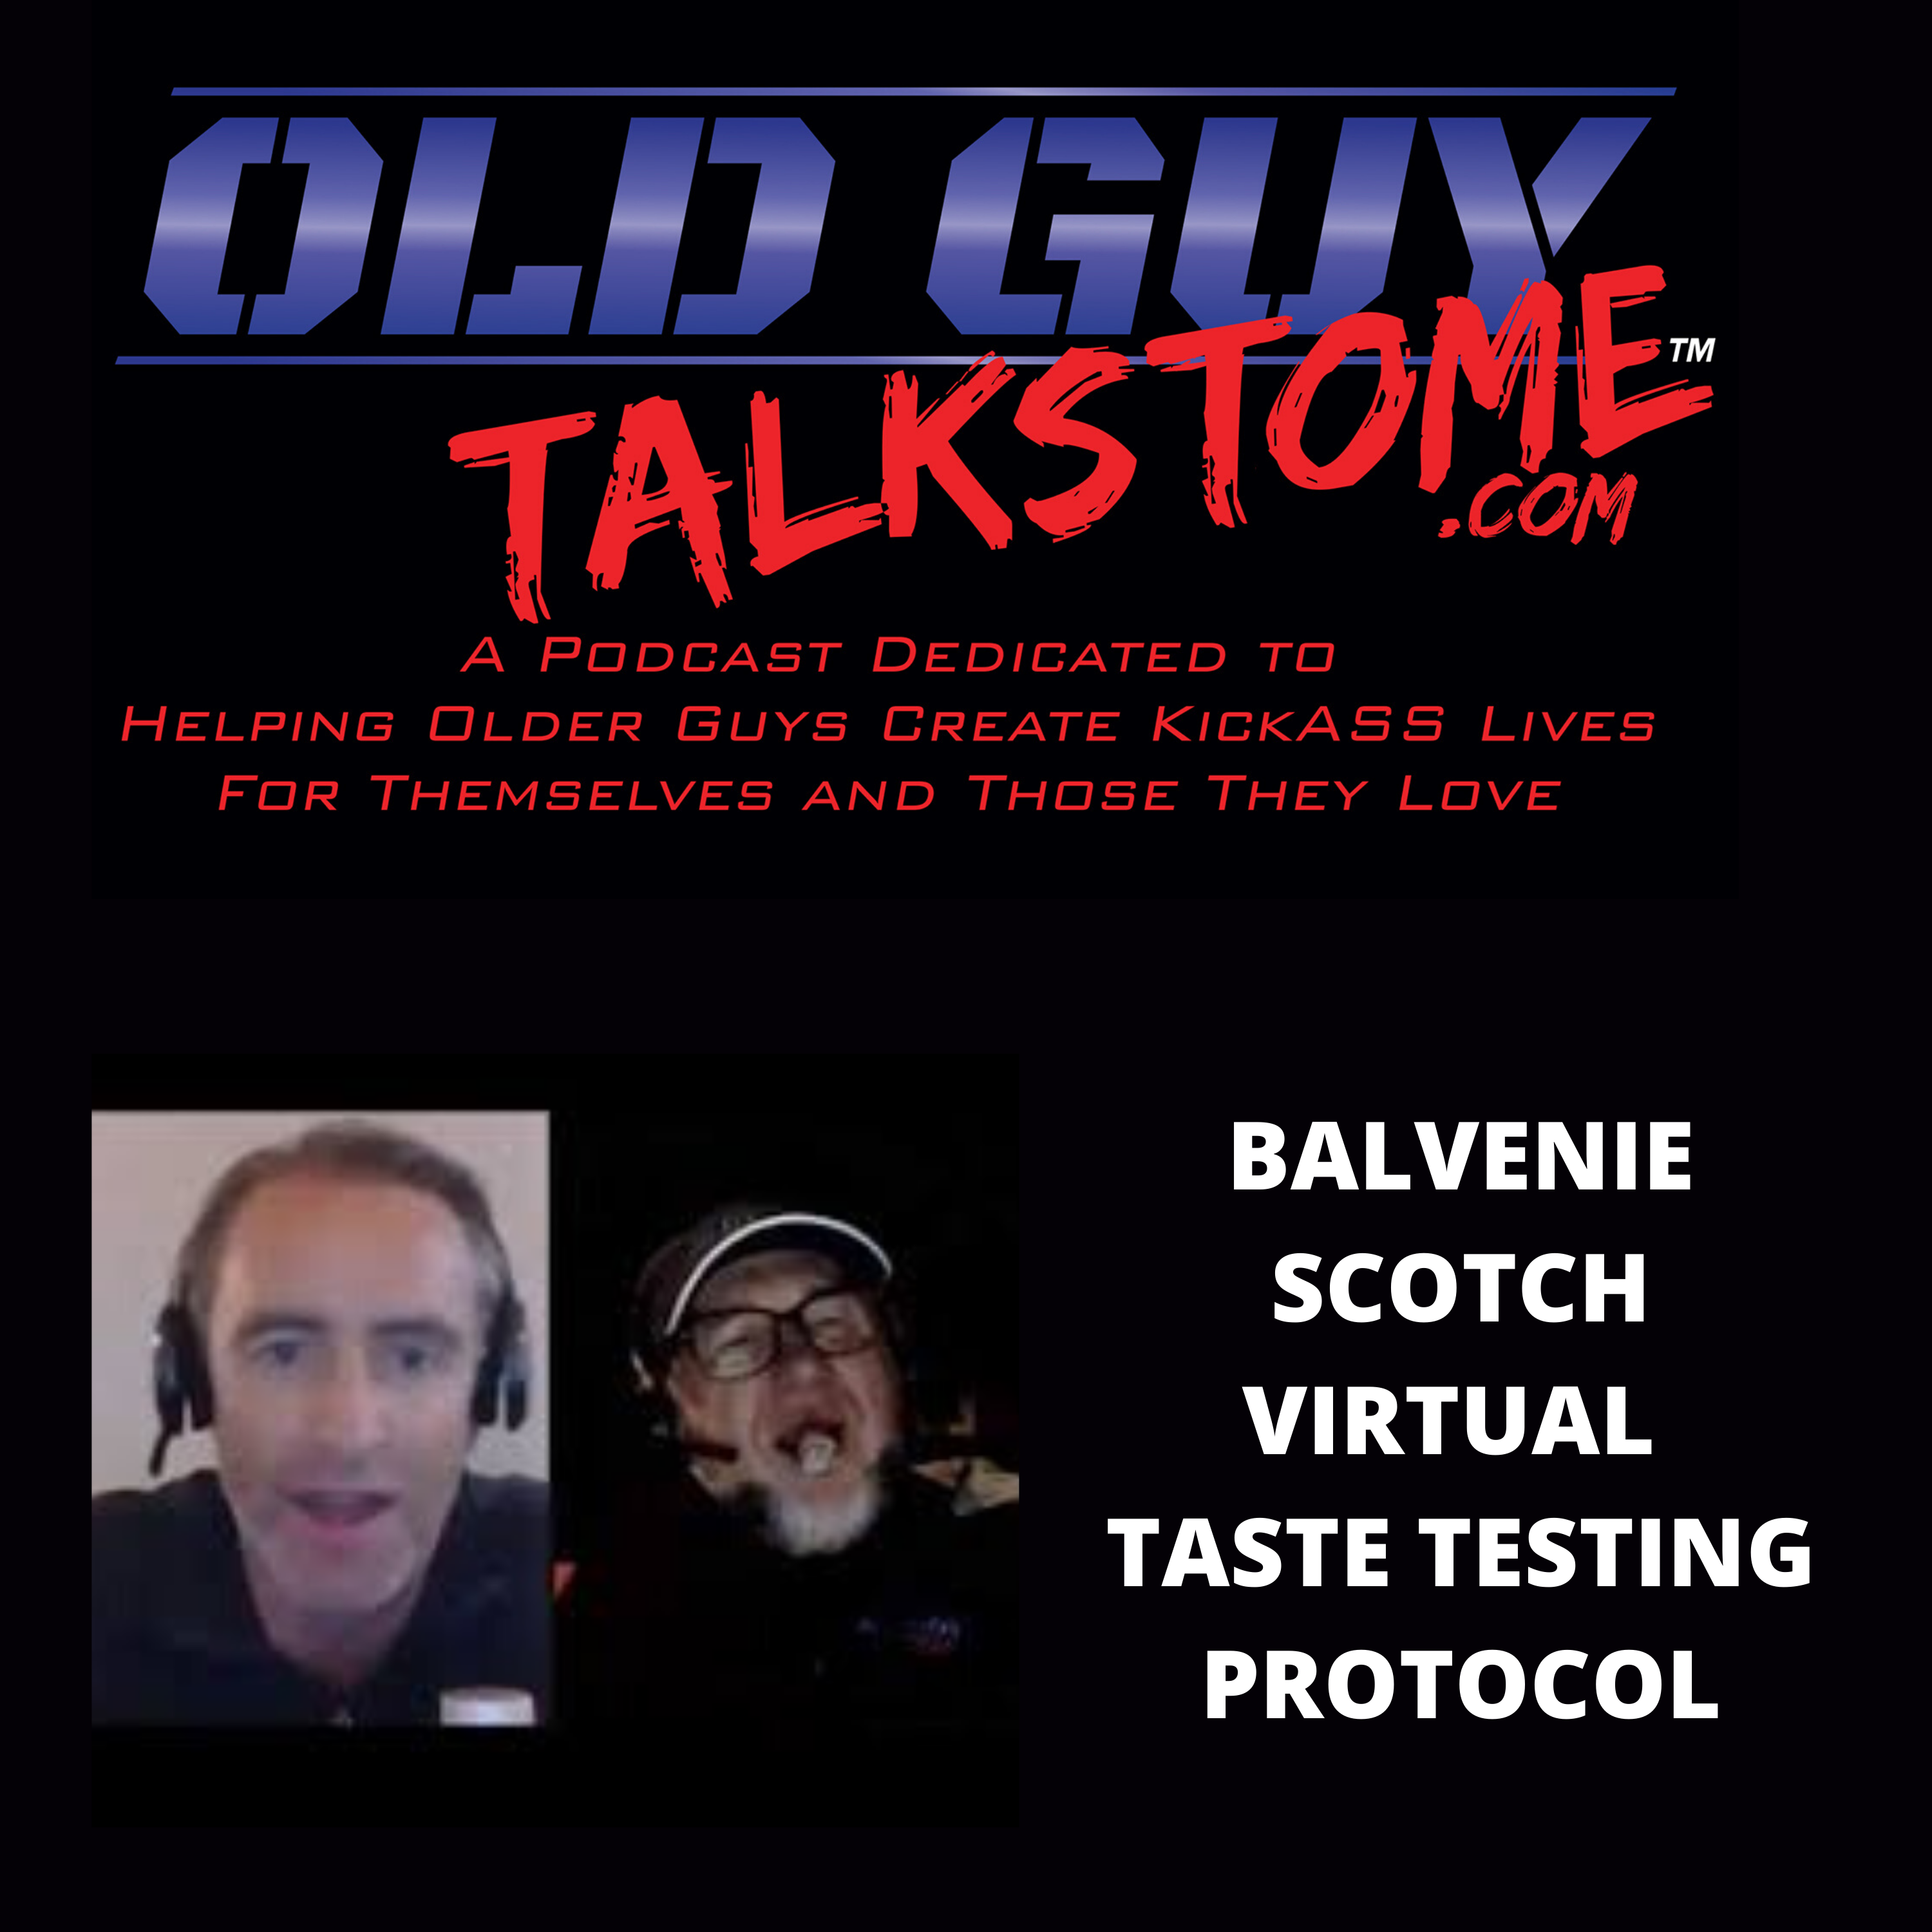 OldGuyTalksToMe - Virtual Tasting of The Balvenie Single Malt Scotch with David Laird and Orest The Old Guy